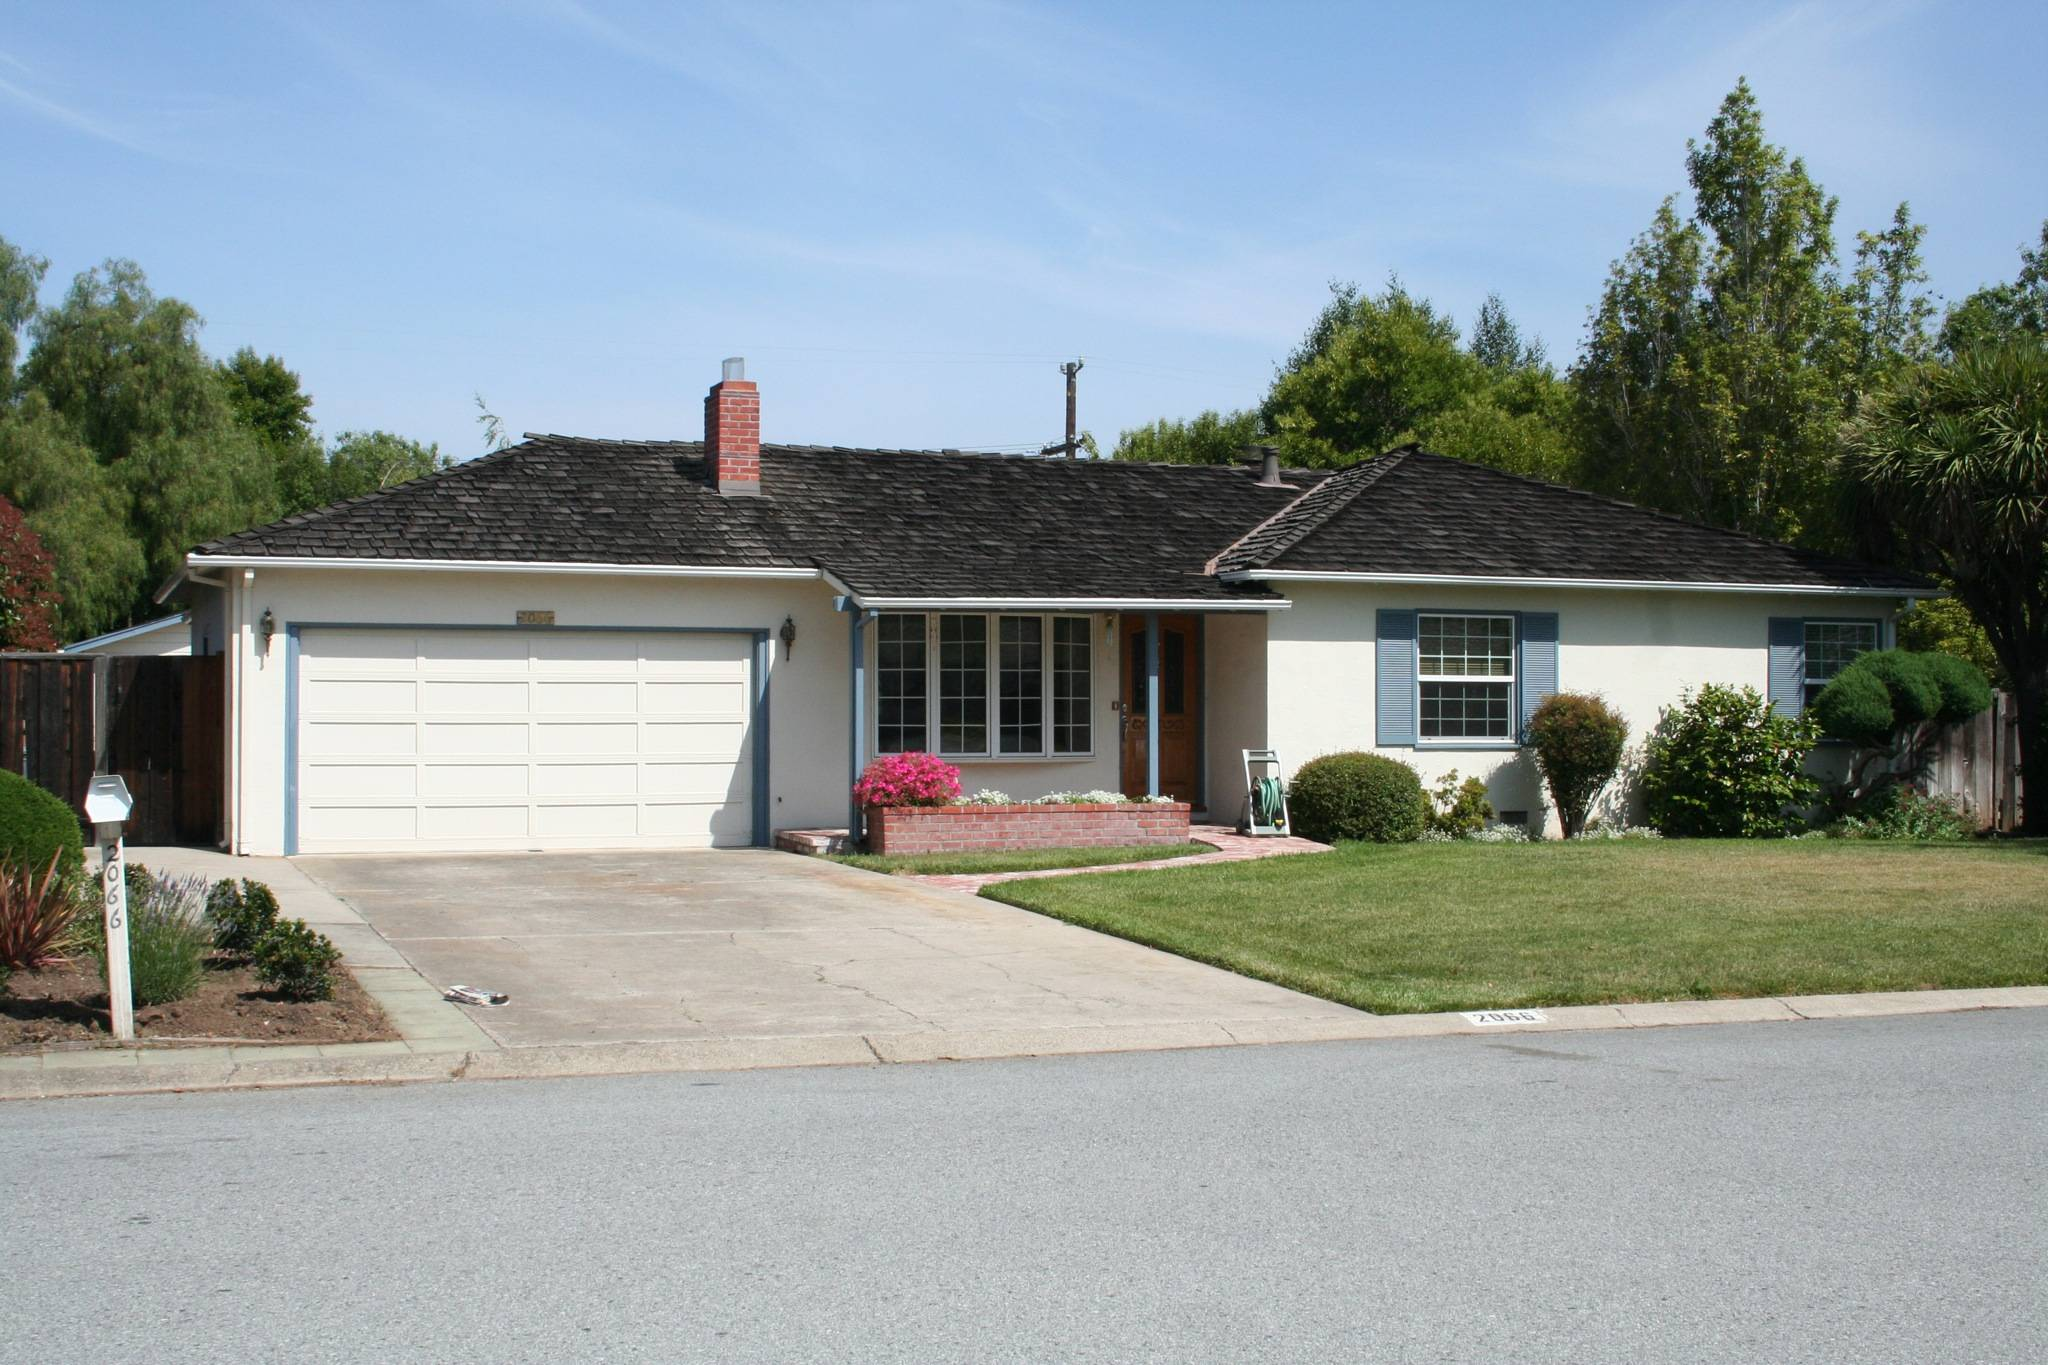 车库地址:2066 Crist Dr., Los Altos, California